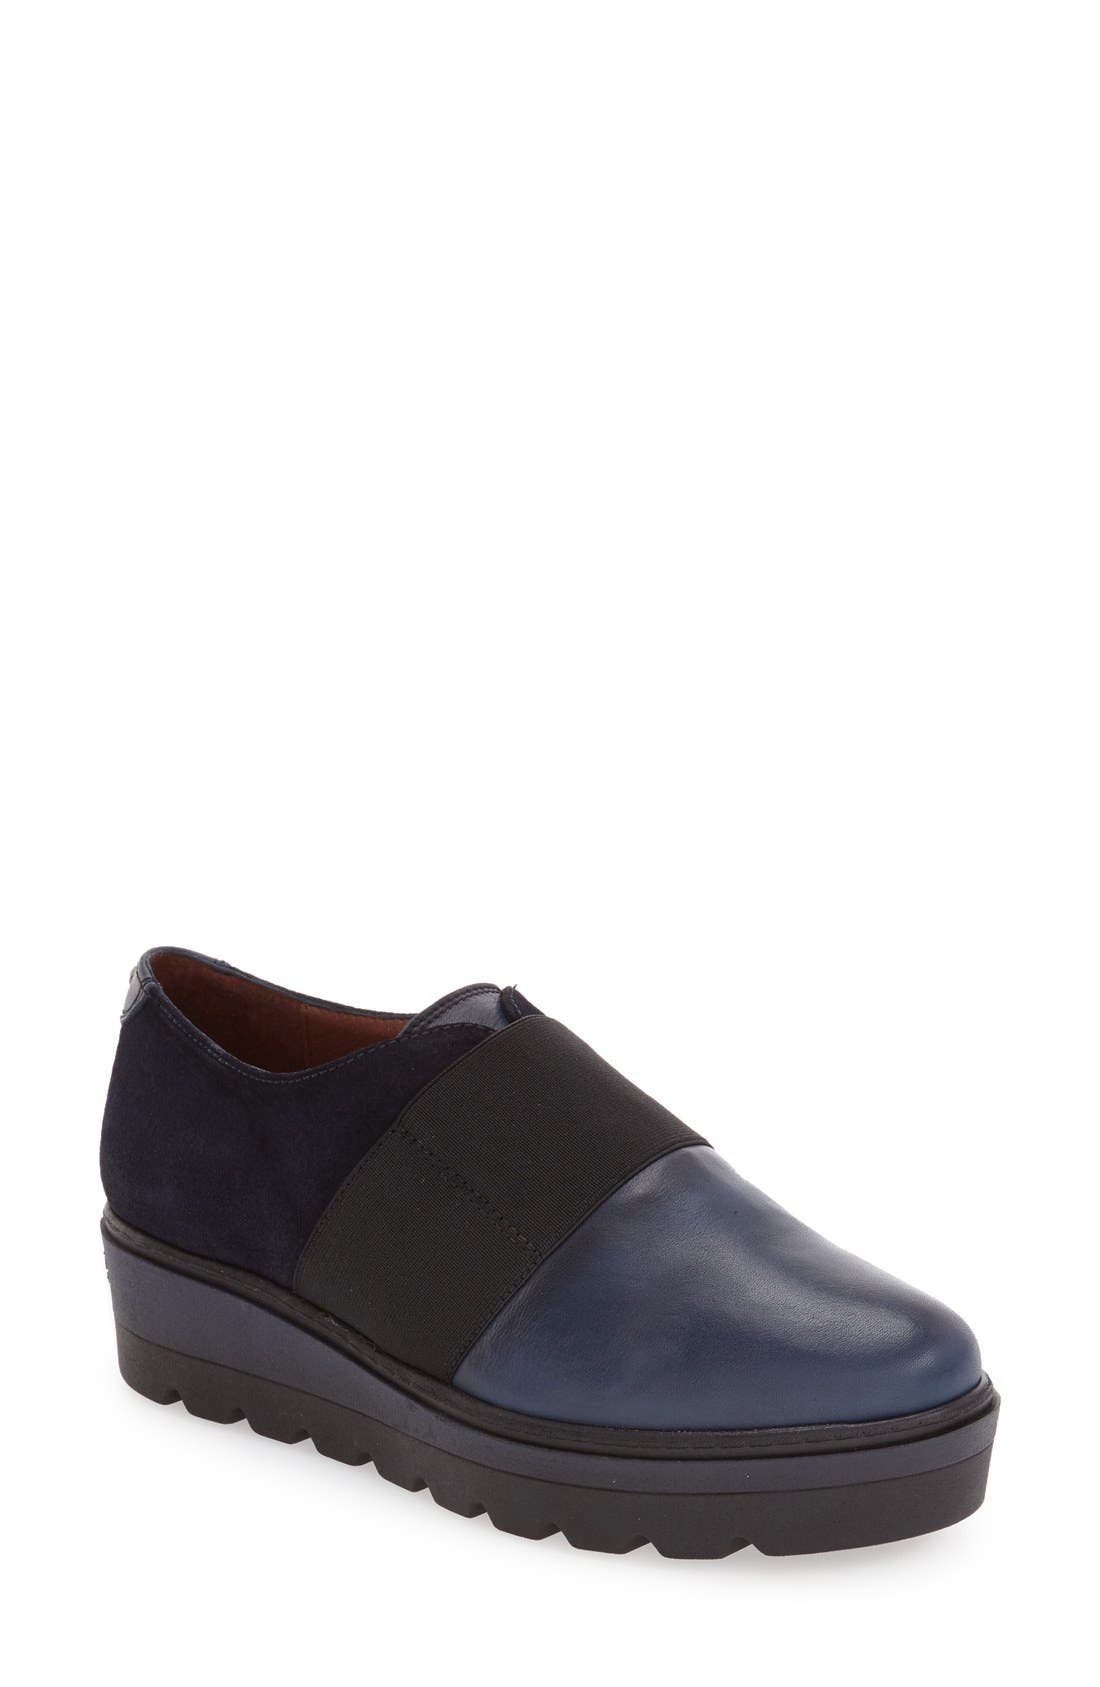 'Ardia' Slip-On Platform Flat,                         Main,                         color, Soho Blue Leather